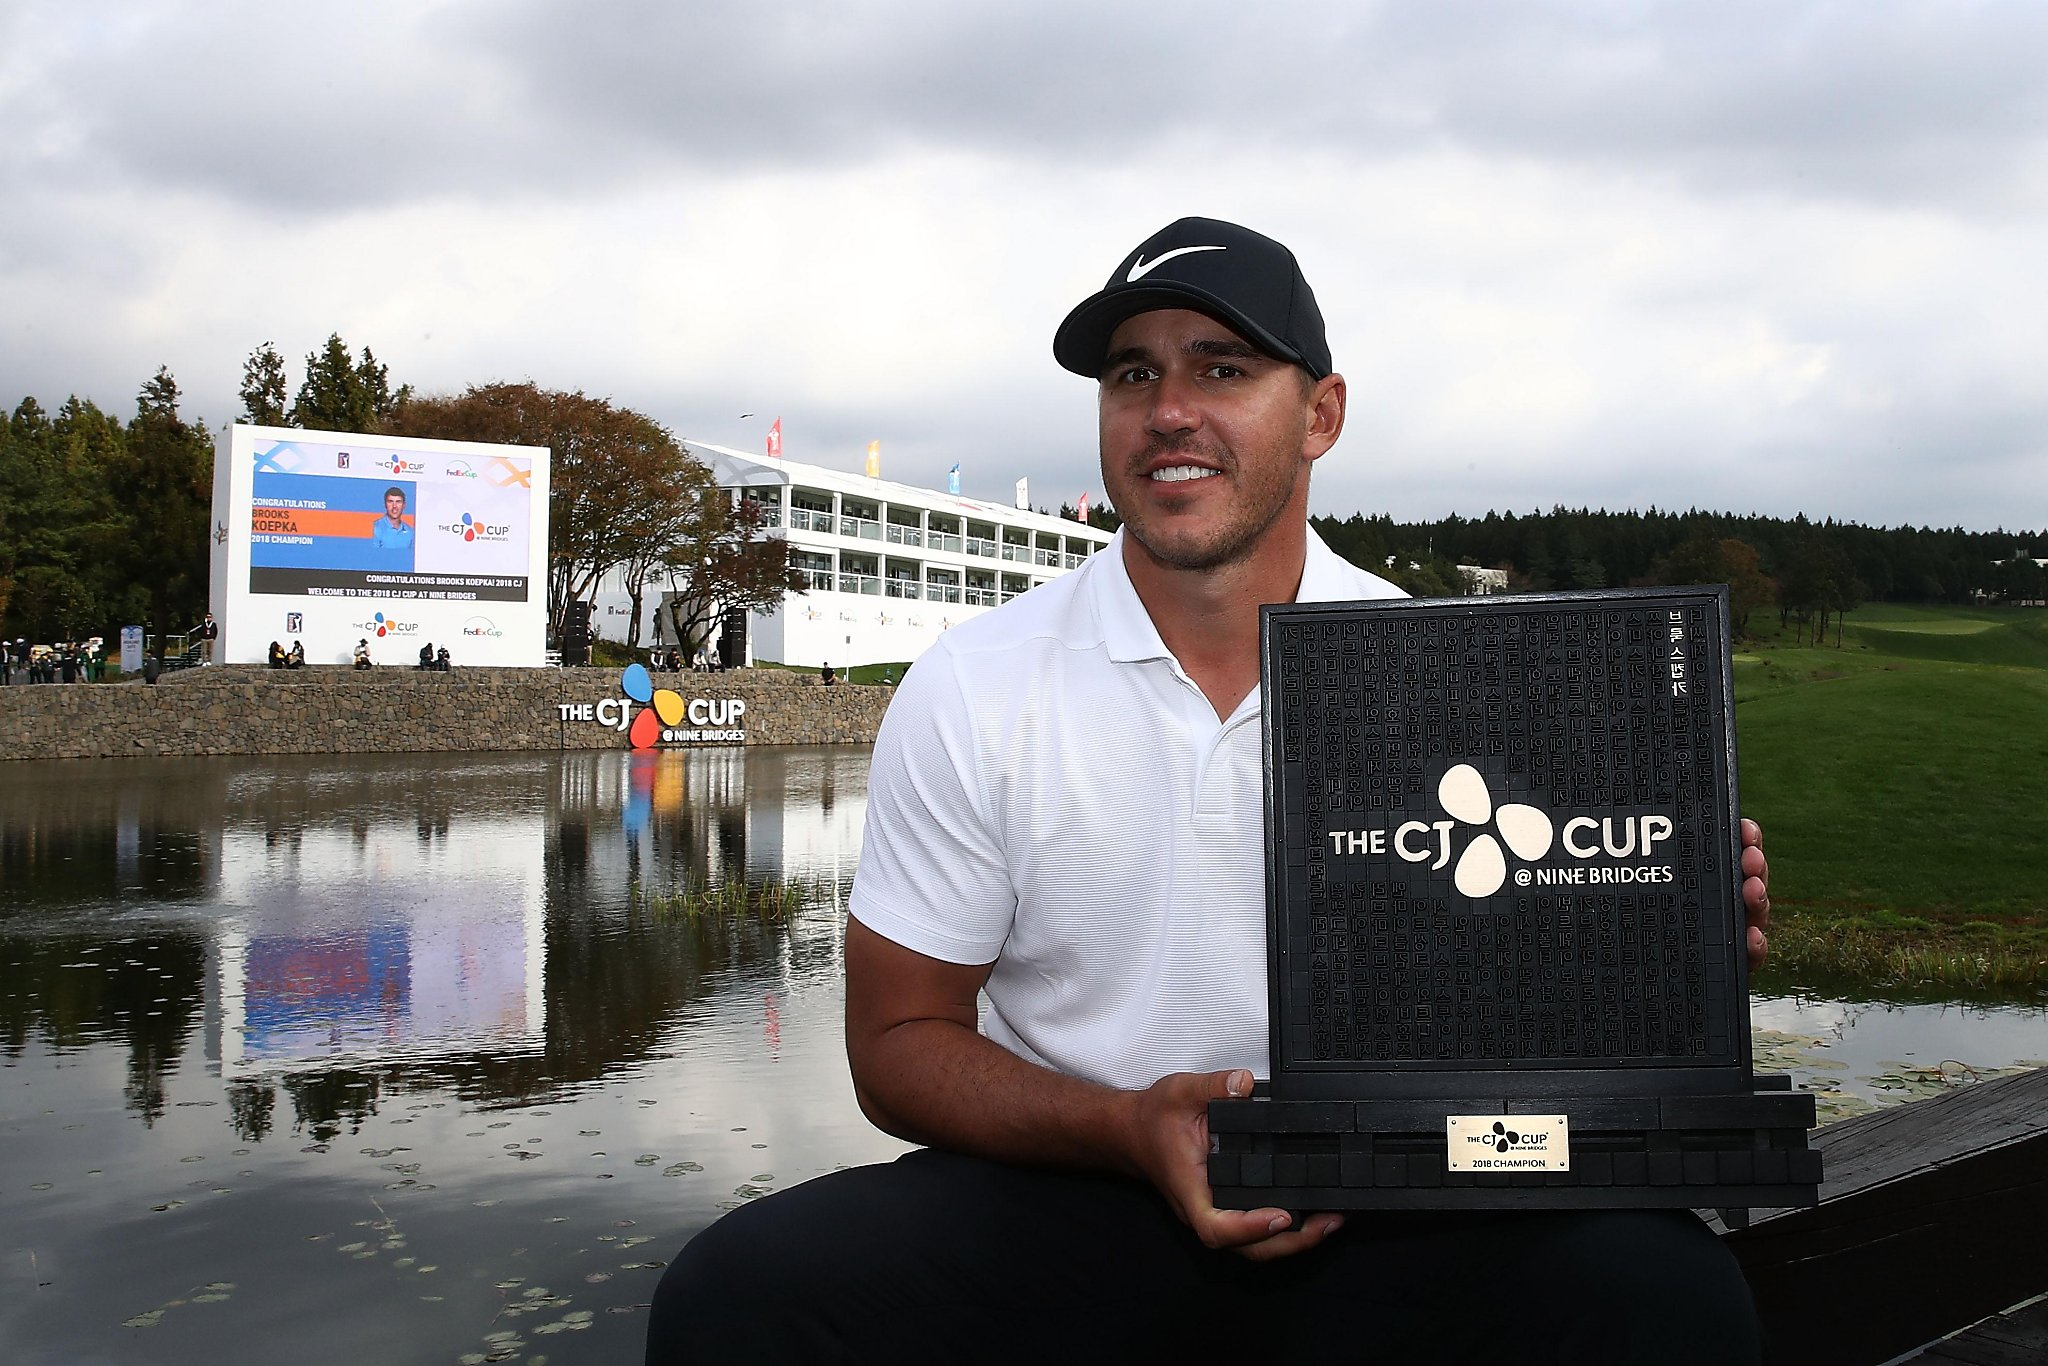 Brooks Koepka has golf's top ranking with win in South Korea